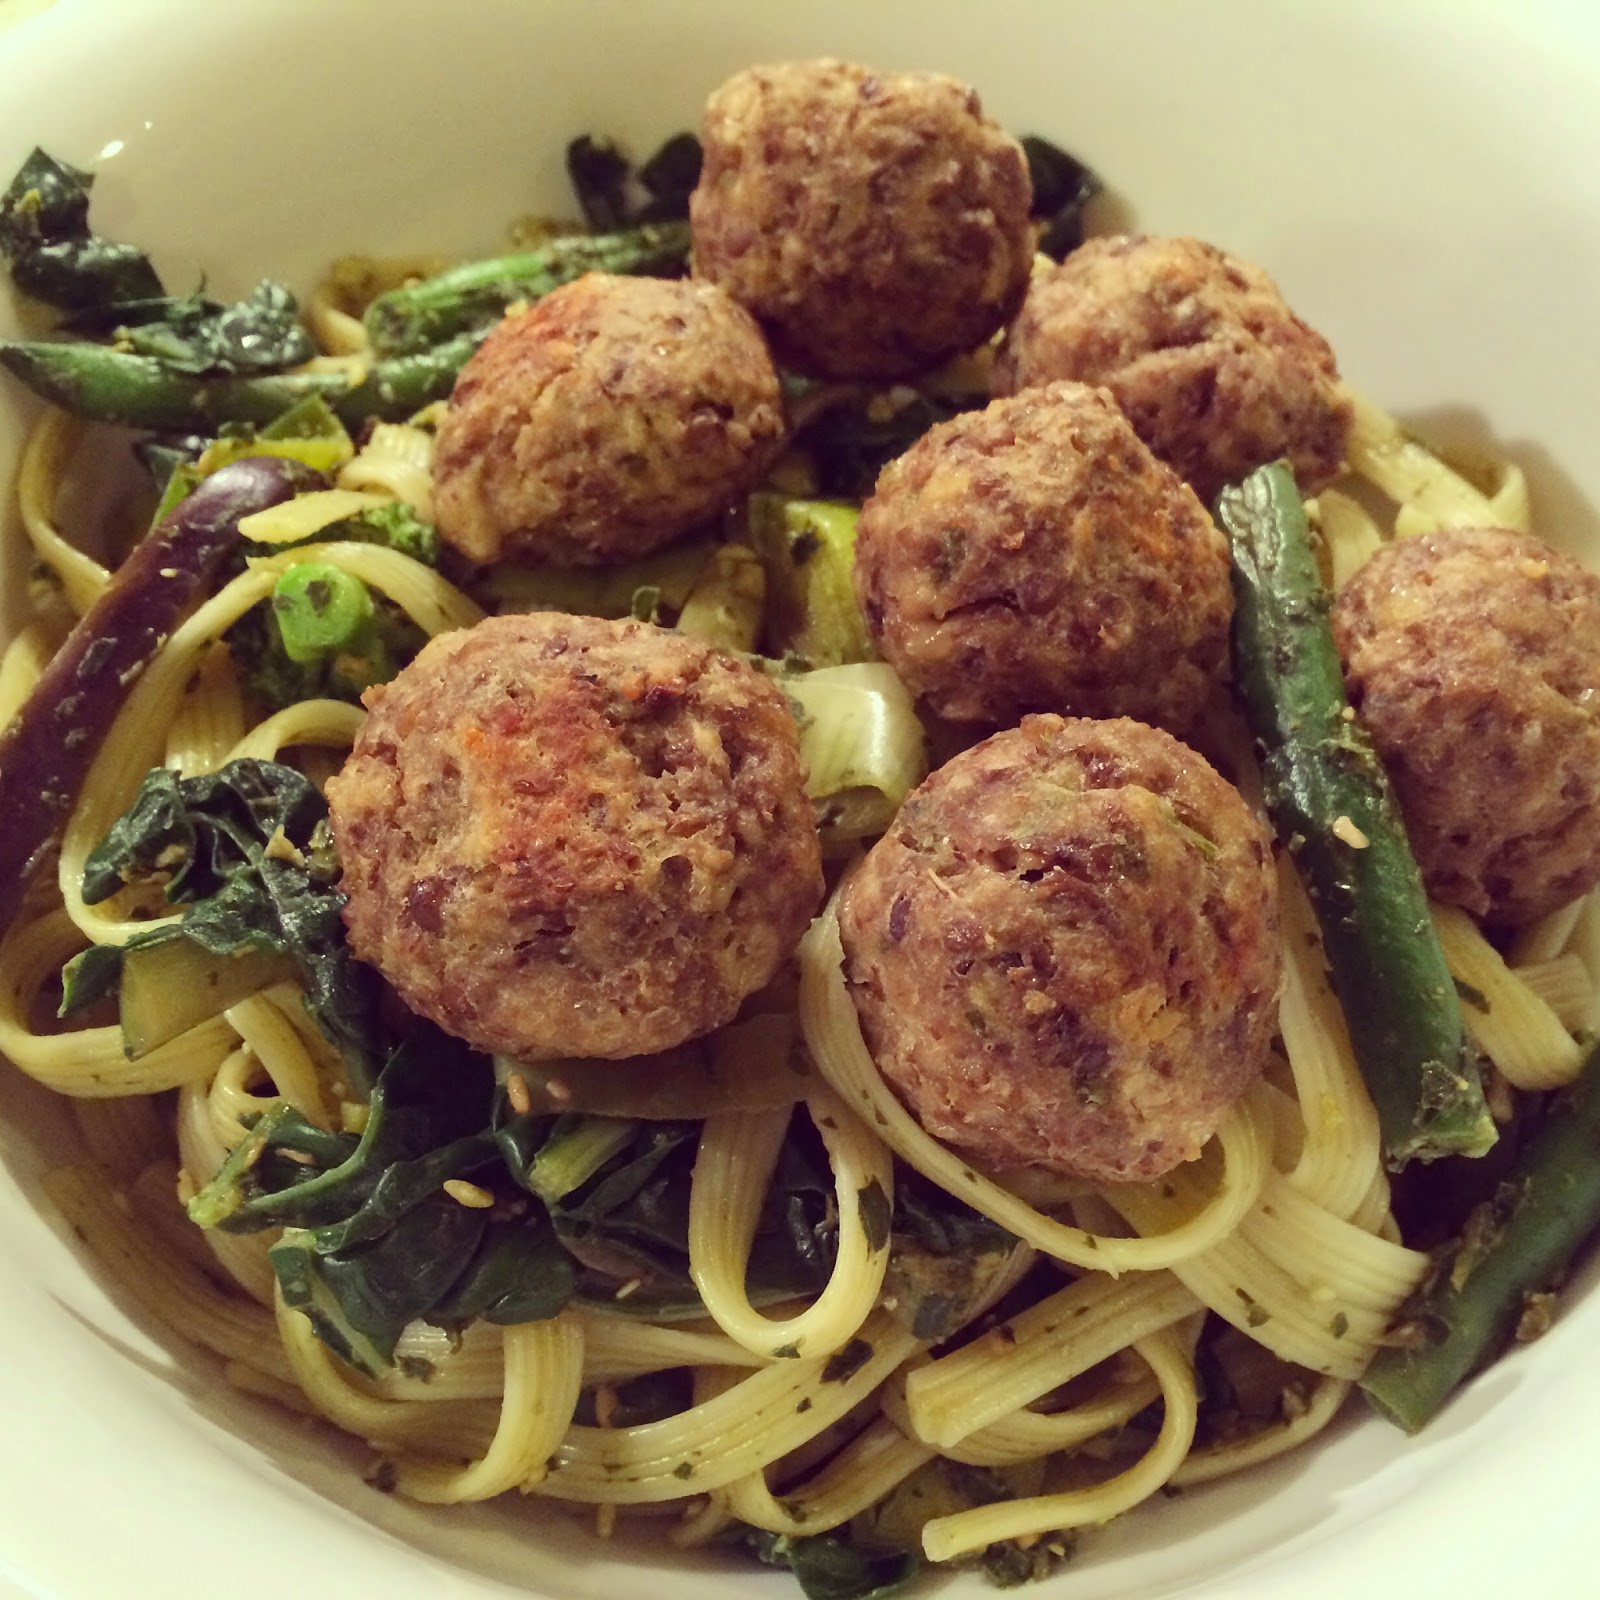 ... : Lentil 'meatballs' with pasta, greens and lemon pesto sauce